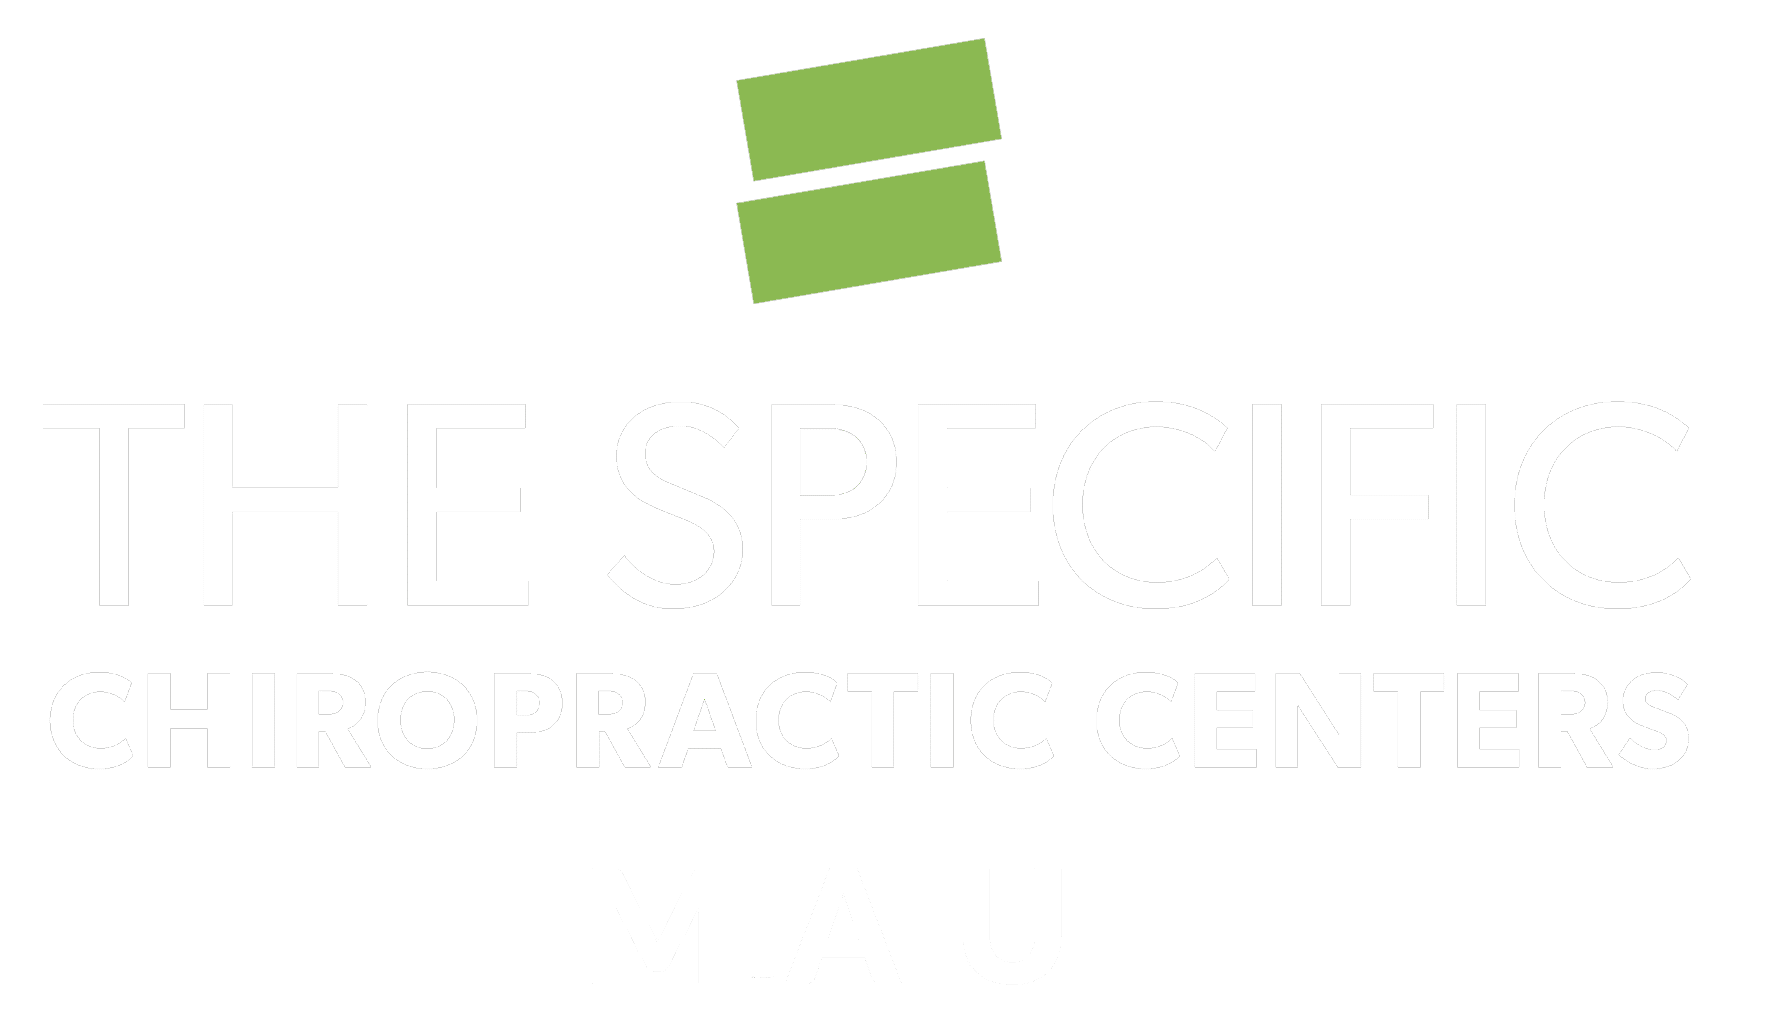 The Specific Chiropractic Centers